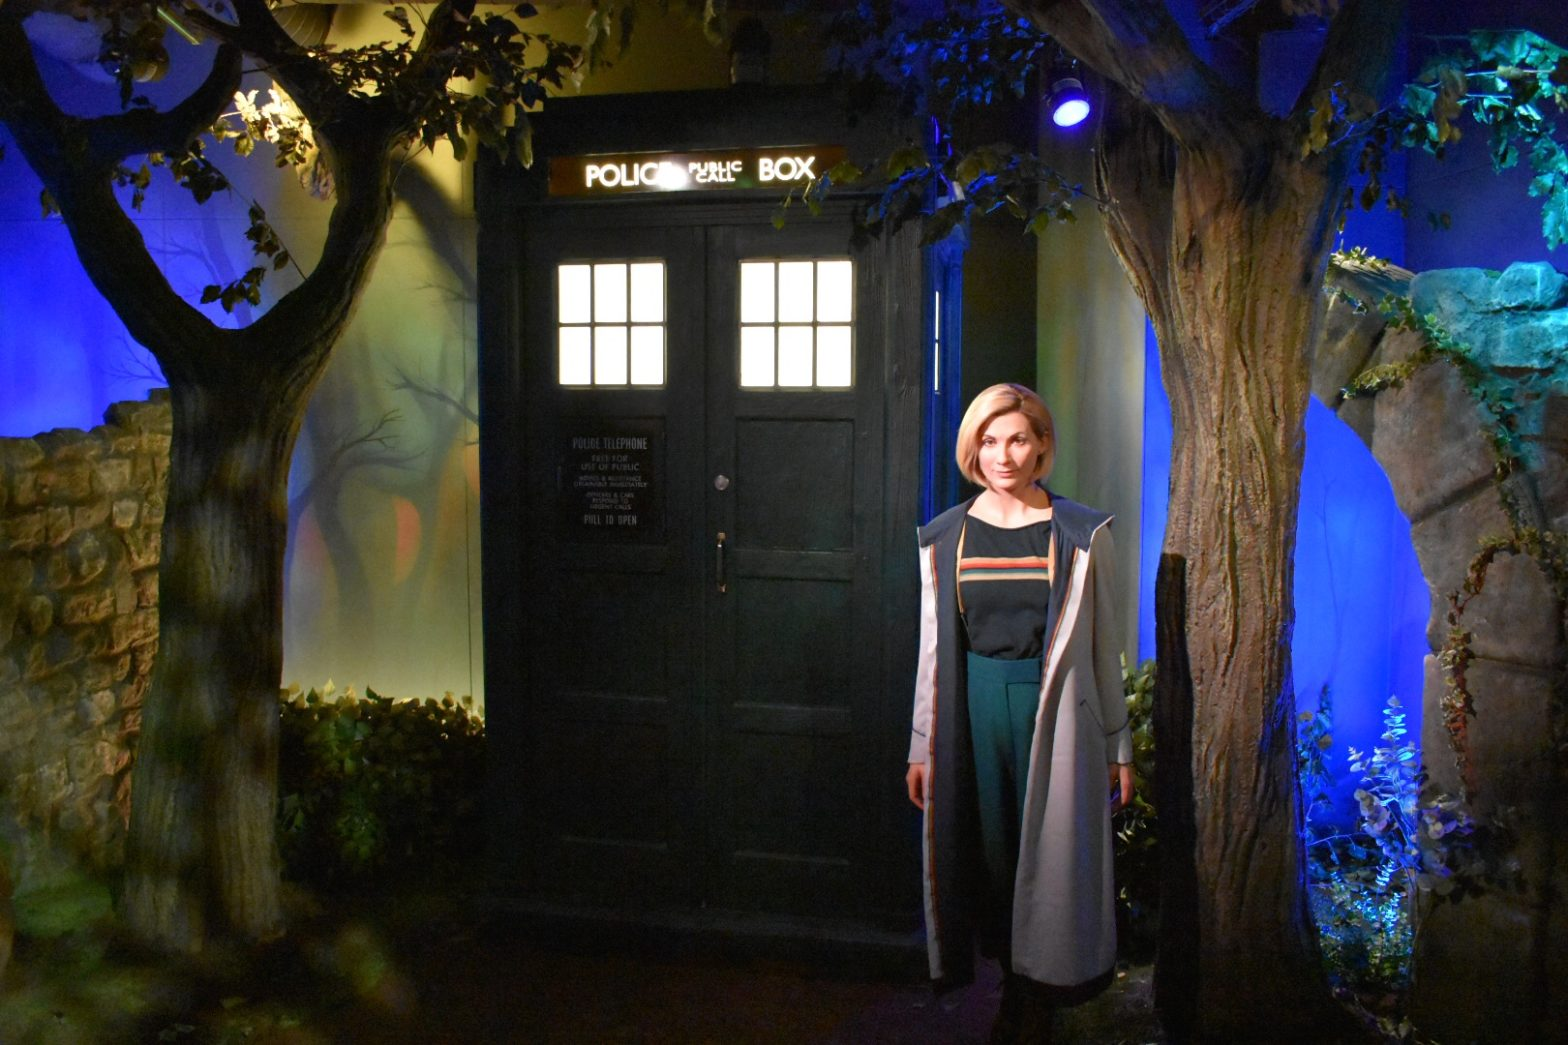 Blackpool Madame Tussauds: March 2019